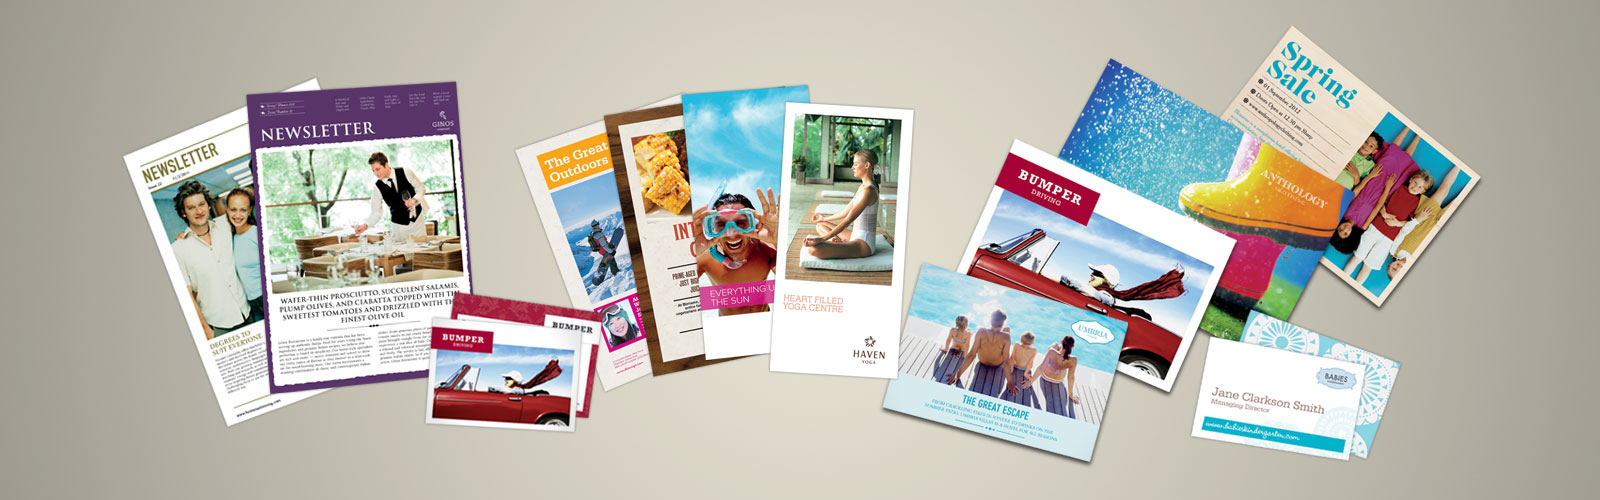 Flyers, brochures, and manuals